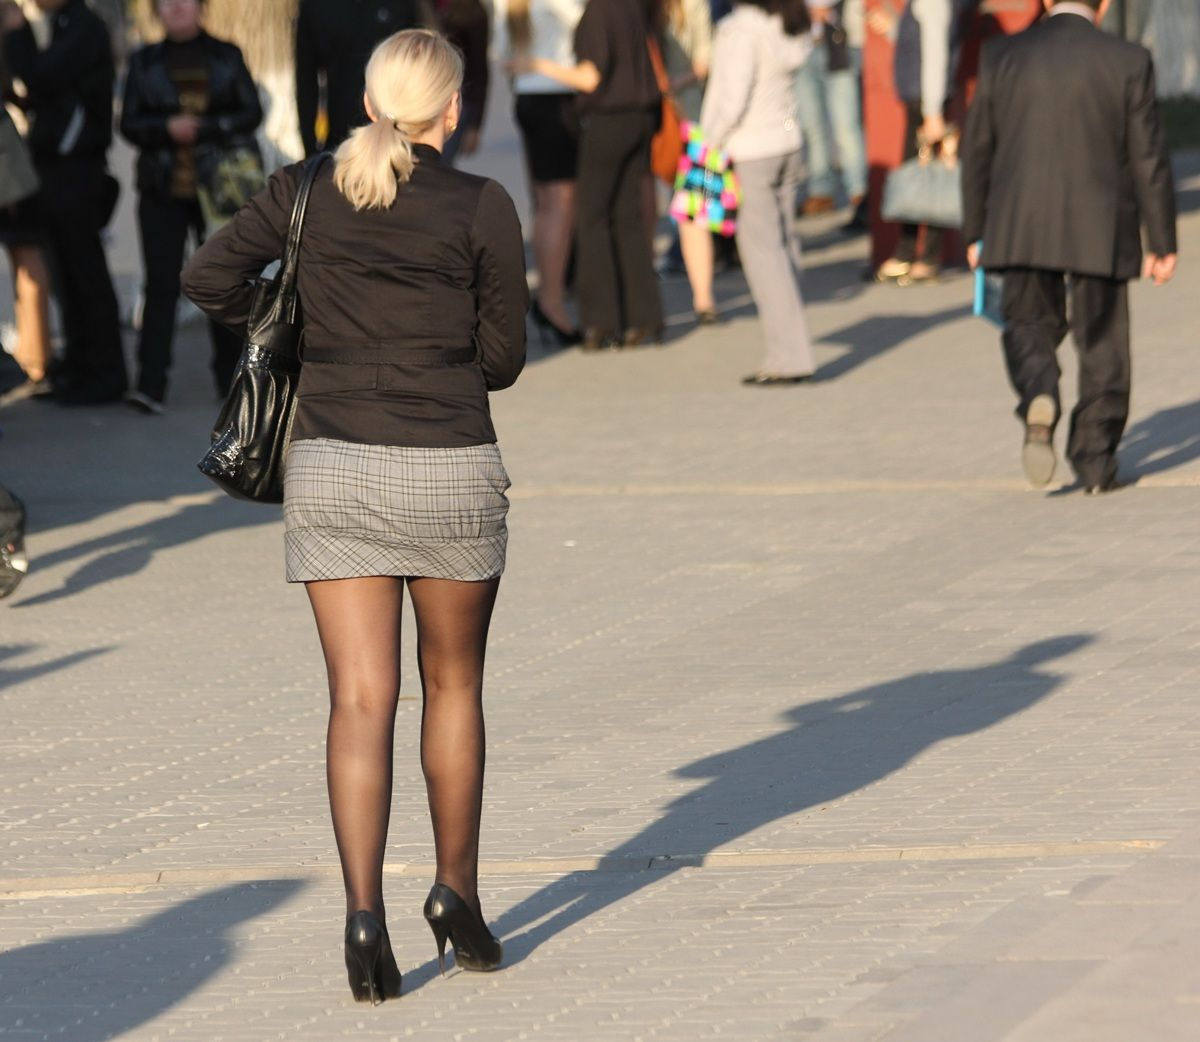 Short skirt on the streets — pic 11